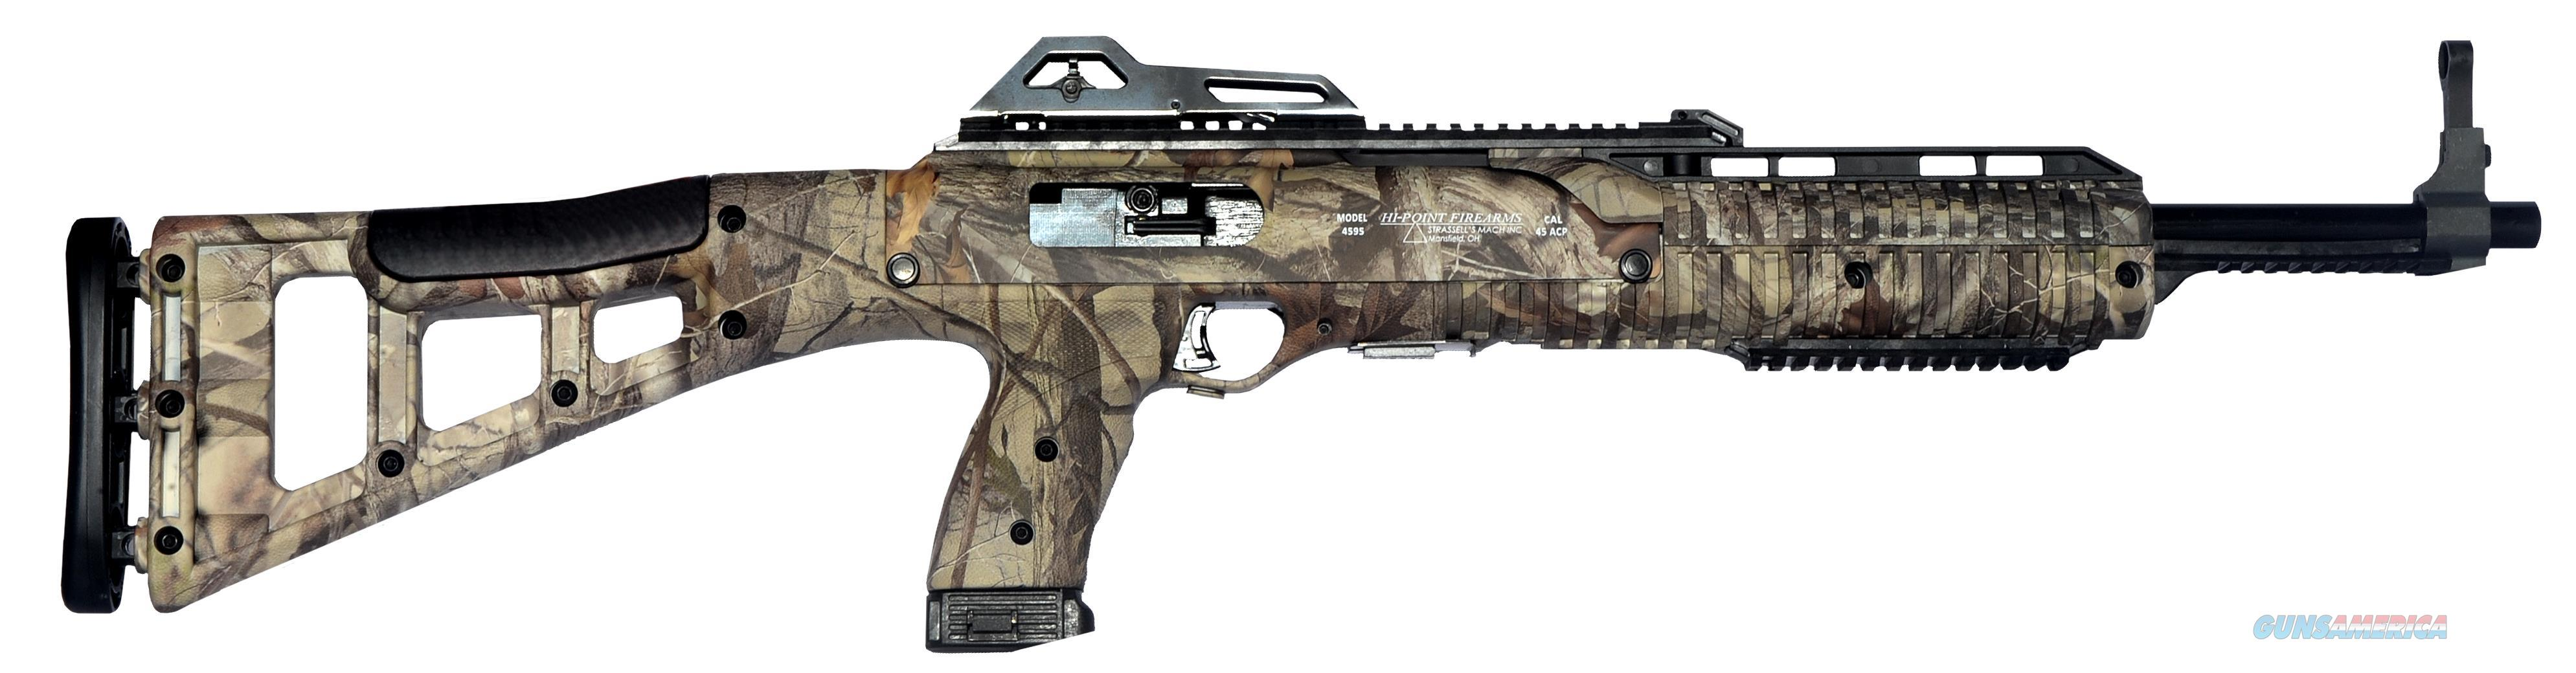 "Hi-Point 4595Tswc 4595Ts Carbine Semi-Automatic 45 Automatic Colt Pistol (Acp) 17.5"" 9+1 Polymer Skeleton Woodland Camo Stk Black 4595TS WC  Guns > Rifles > H Misc Rifles"